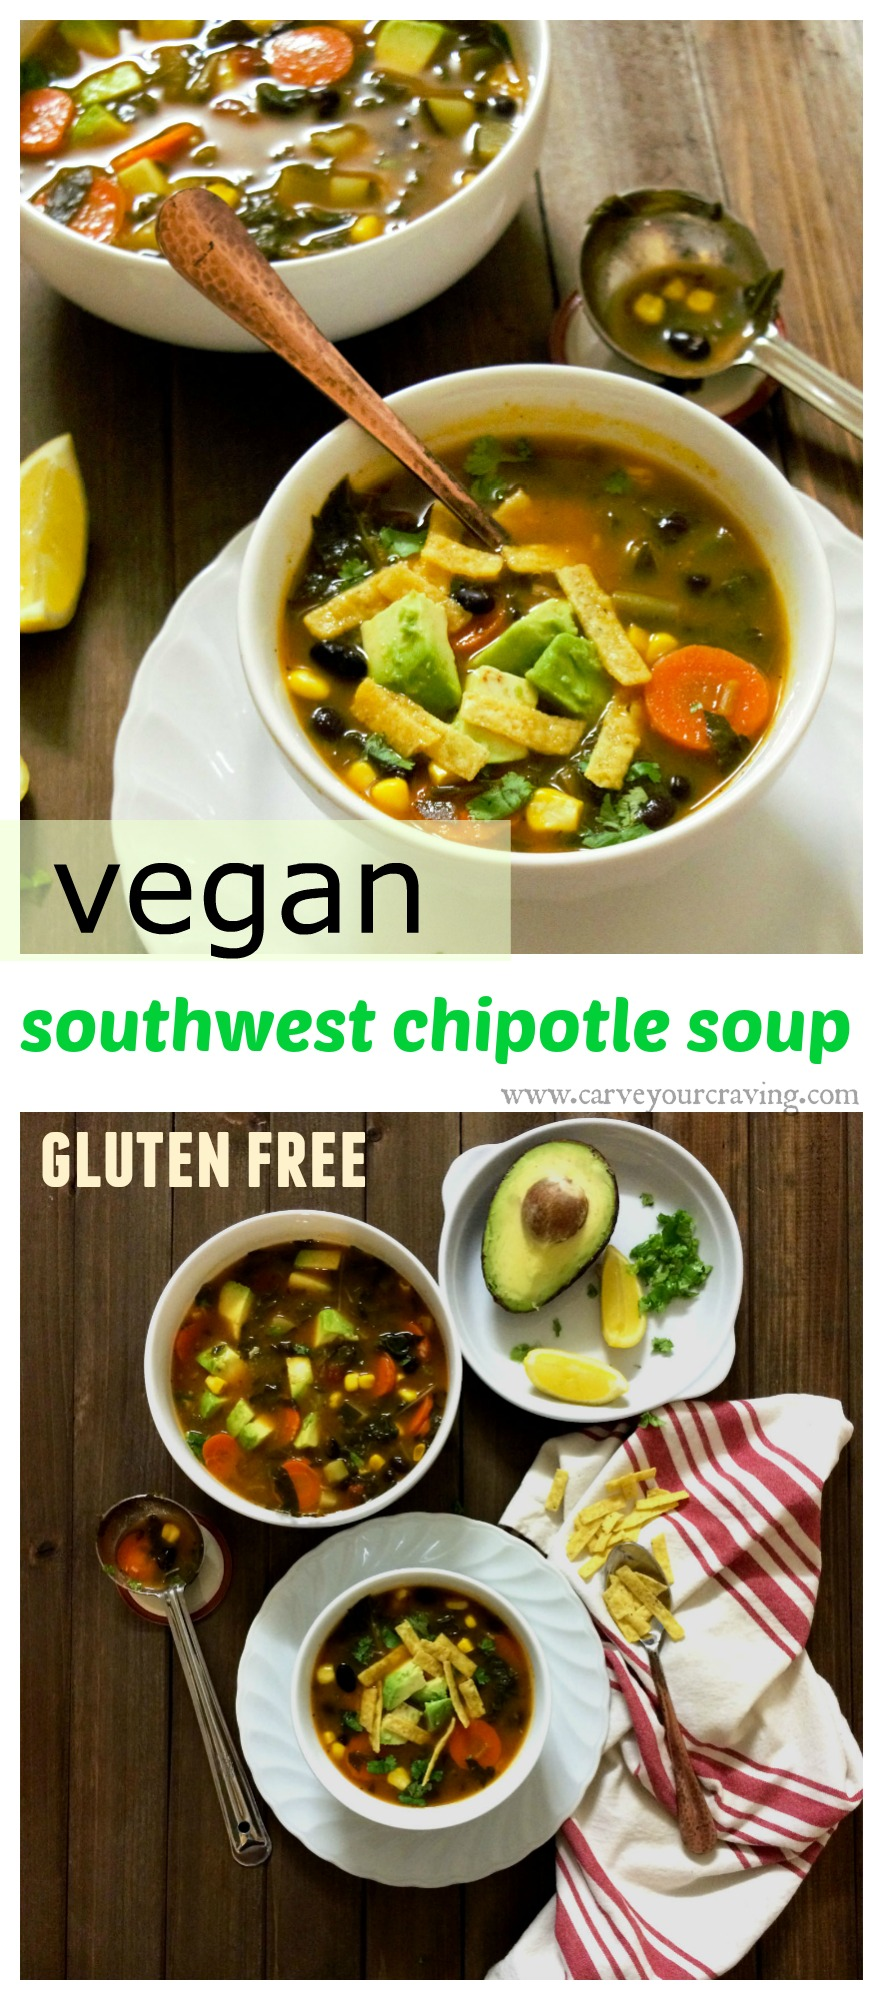 southwest chipotle oup with added greens (vegan and gluten free)s